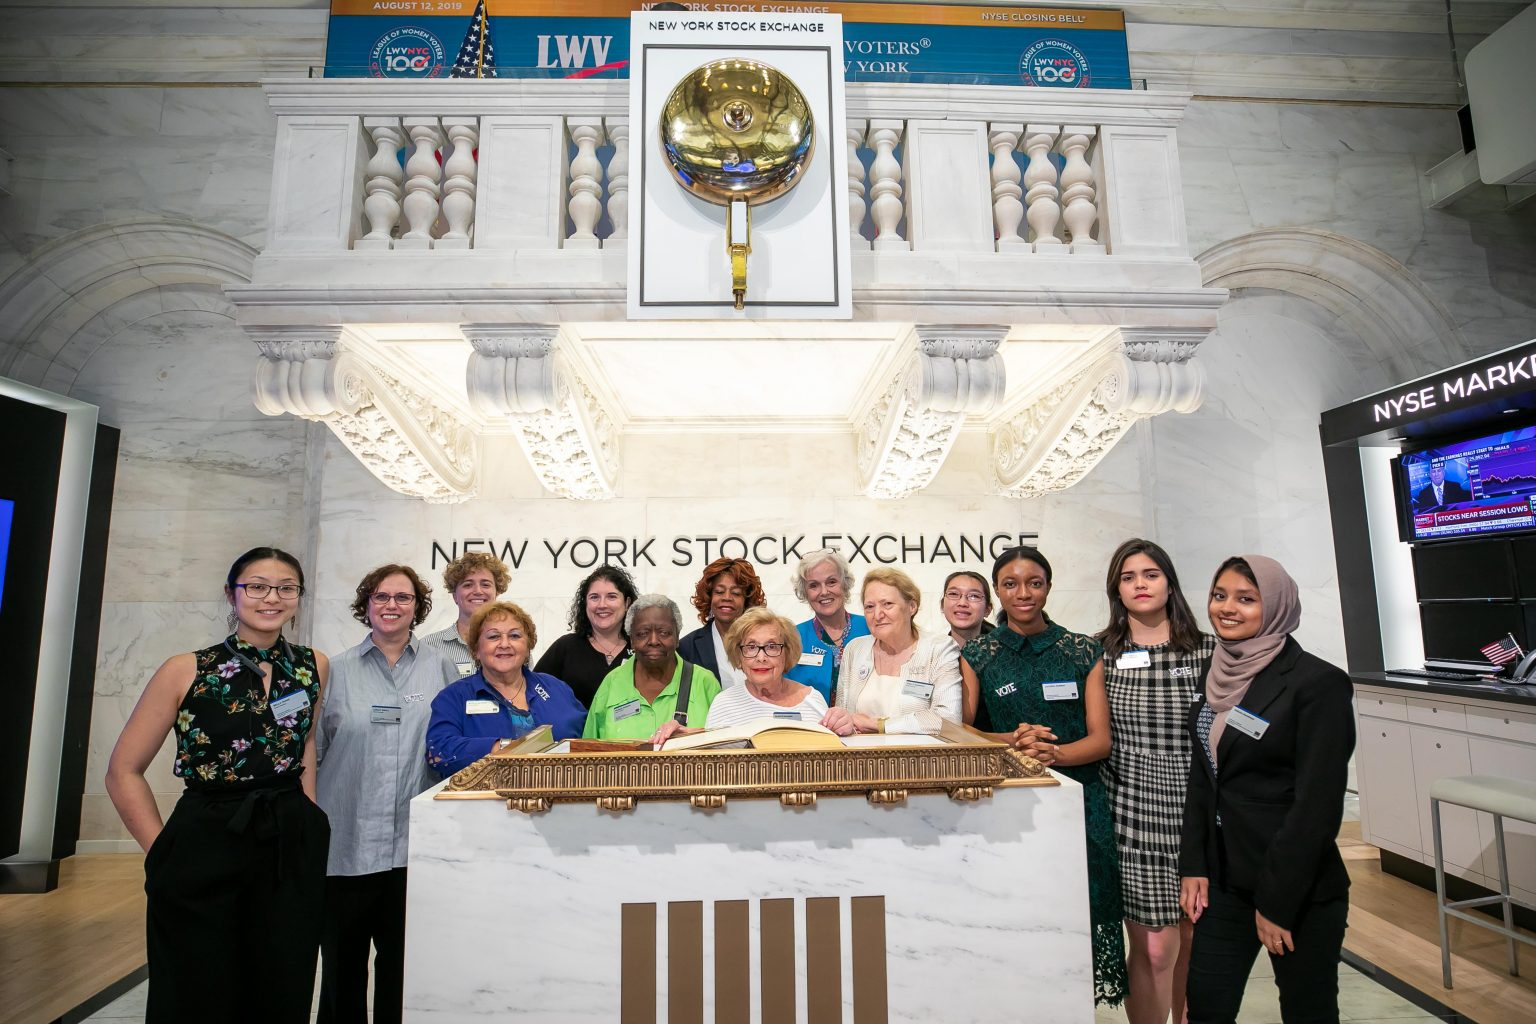 The New York Stock Exchange welcomes The League of Women Voters of the City of New York in celebration of its 100th anniversary. Gladys Krasner, Past President, joined by Chris Taylor, Vice President, NYSE Listings and Services, rings the NYSE Closing Bell®.